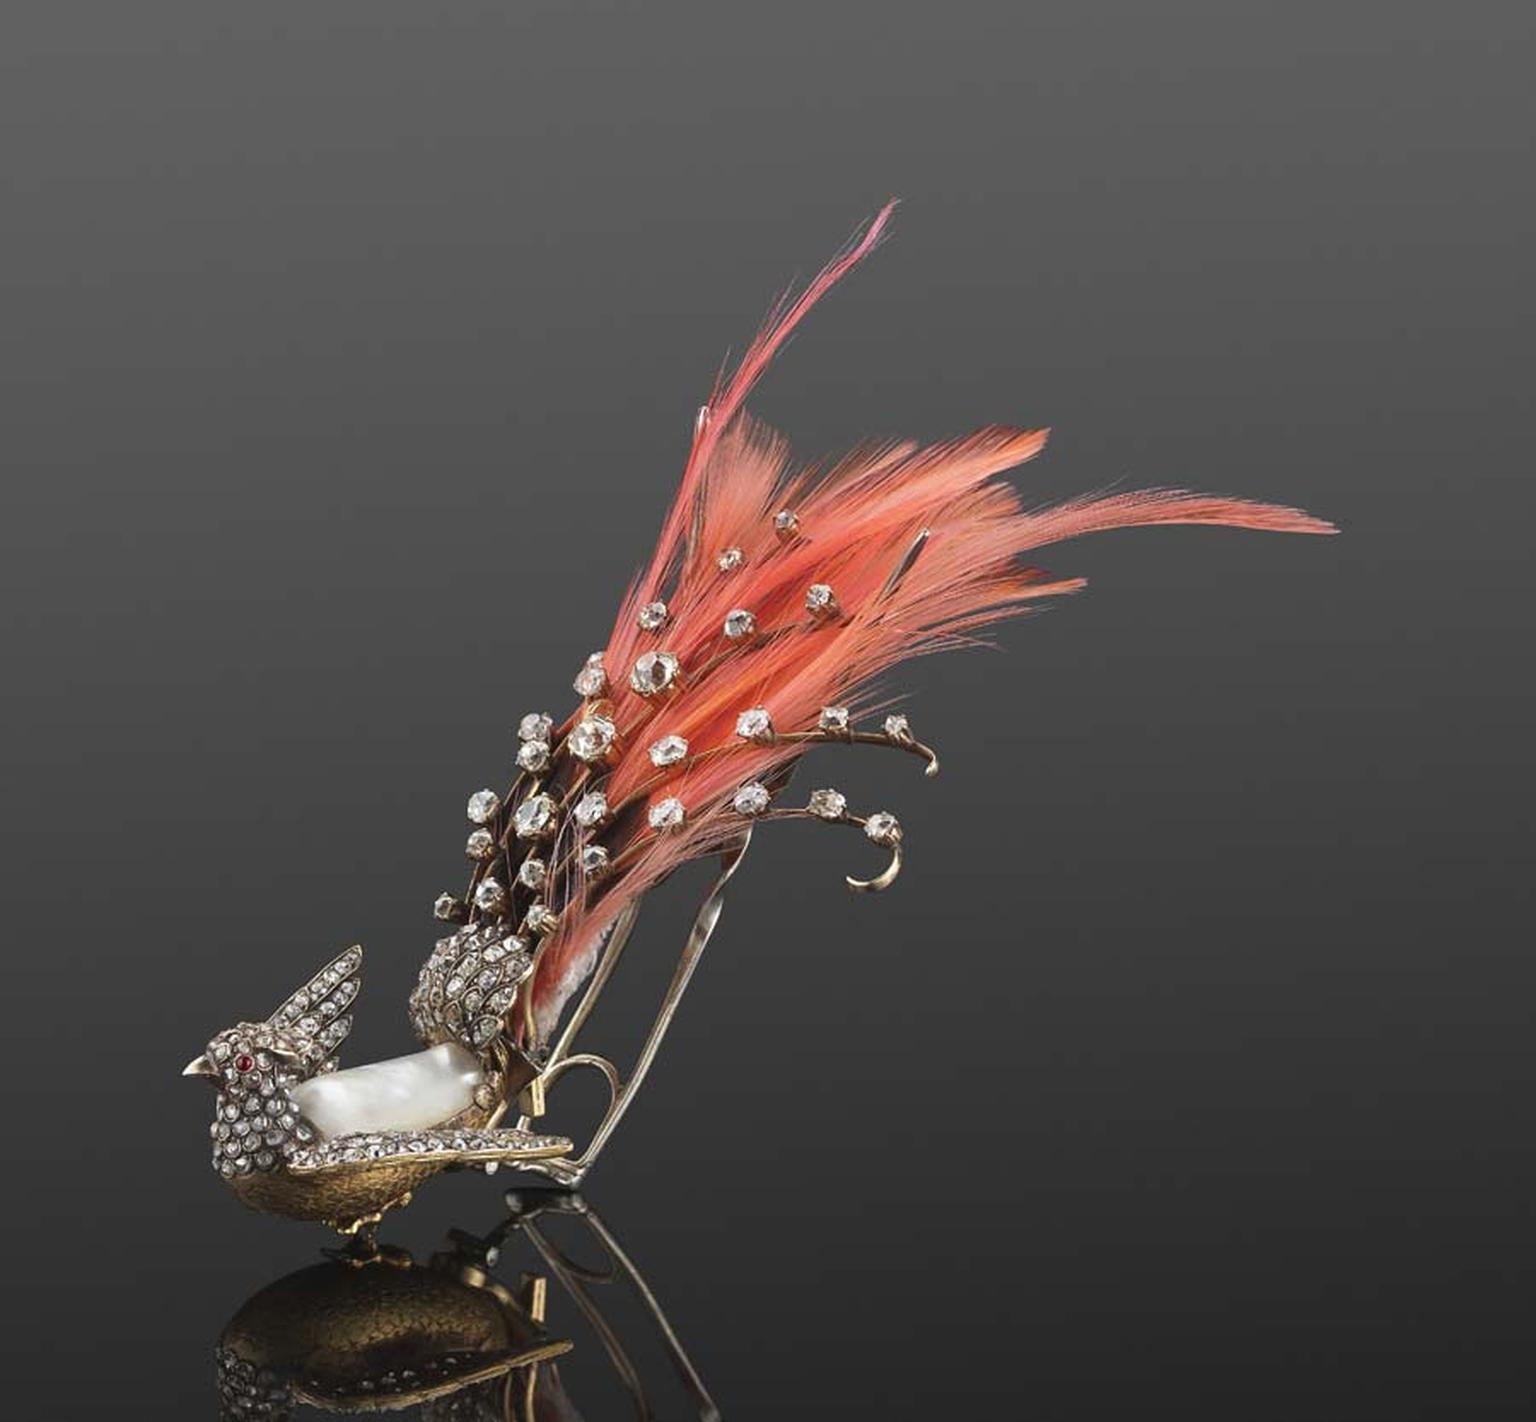 19th century diamond, ruby and pearl bird aigrette hair ornament with feathers, sold at Fred Leighton's store in Manhattan.